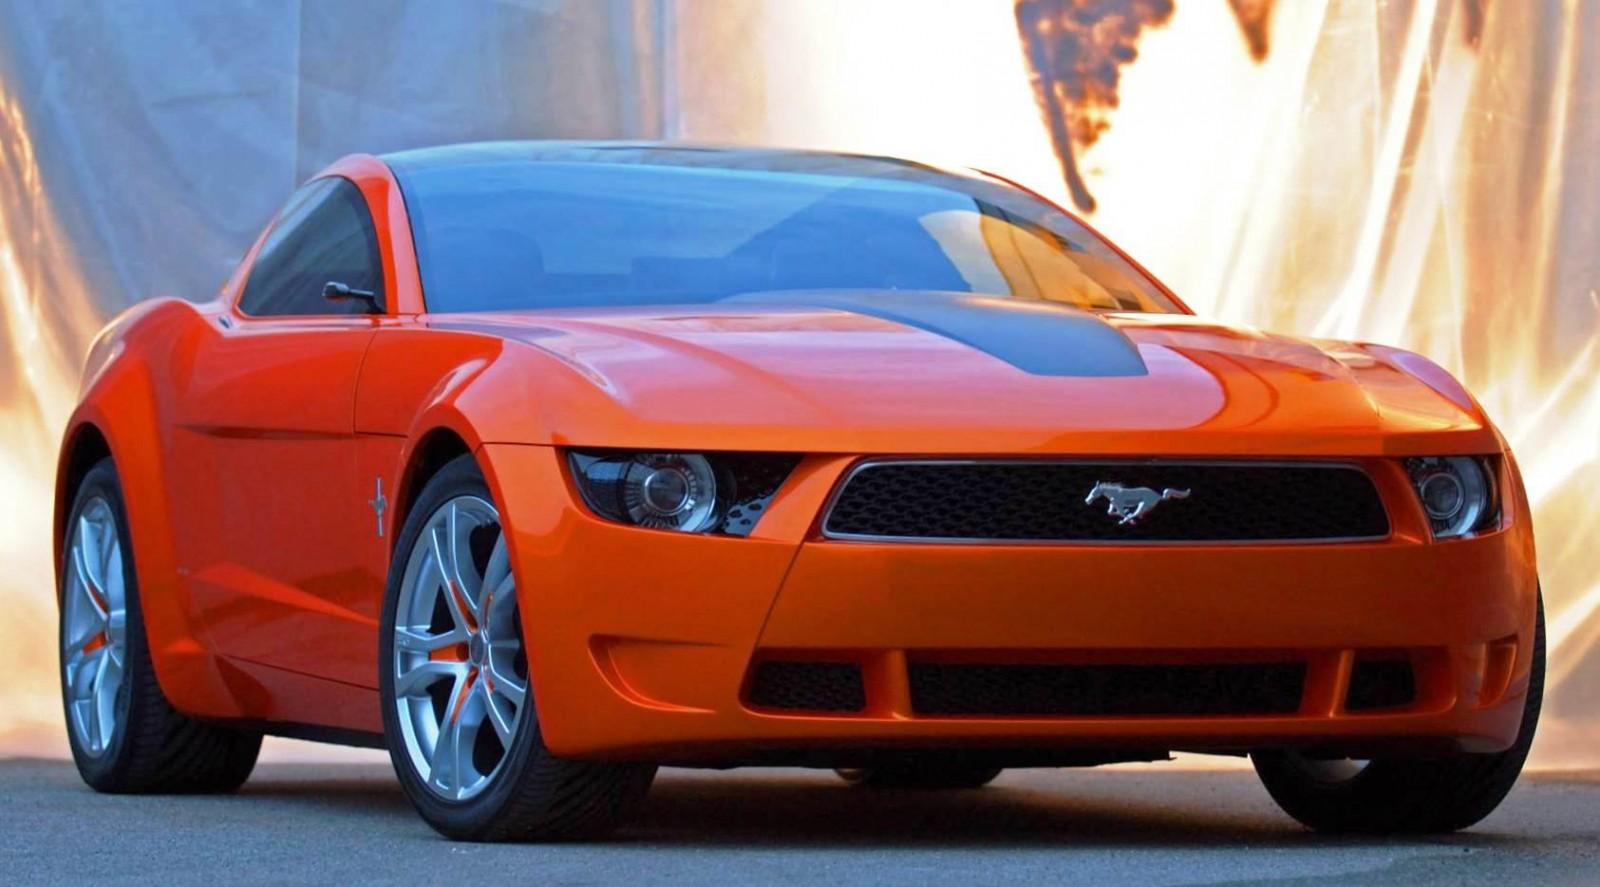 2006 Giugiaro Ford Mustang Concept Was Ringer vs In-House Ford Designs 4